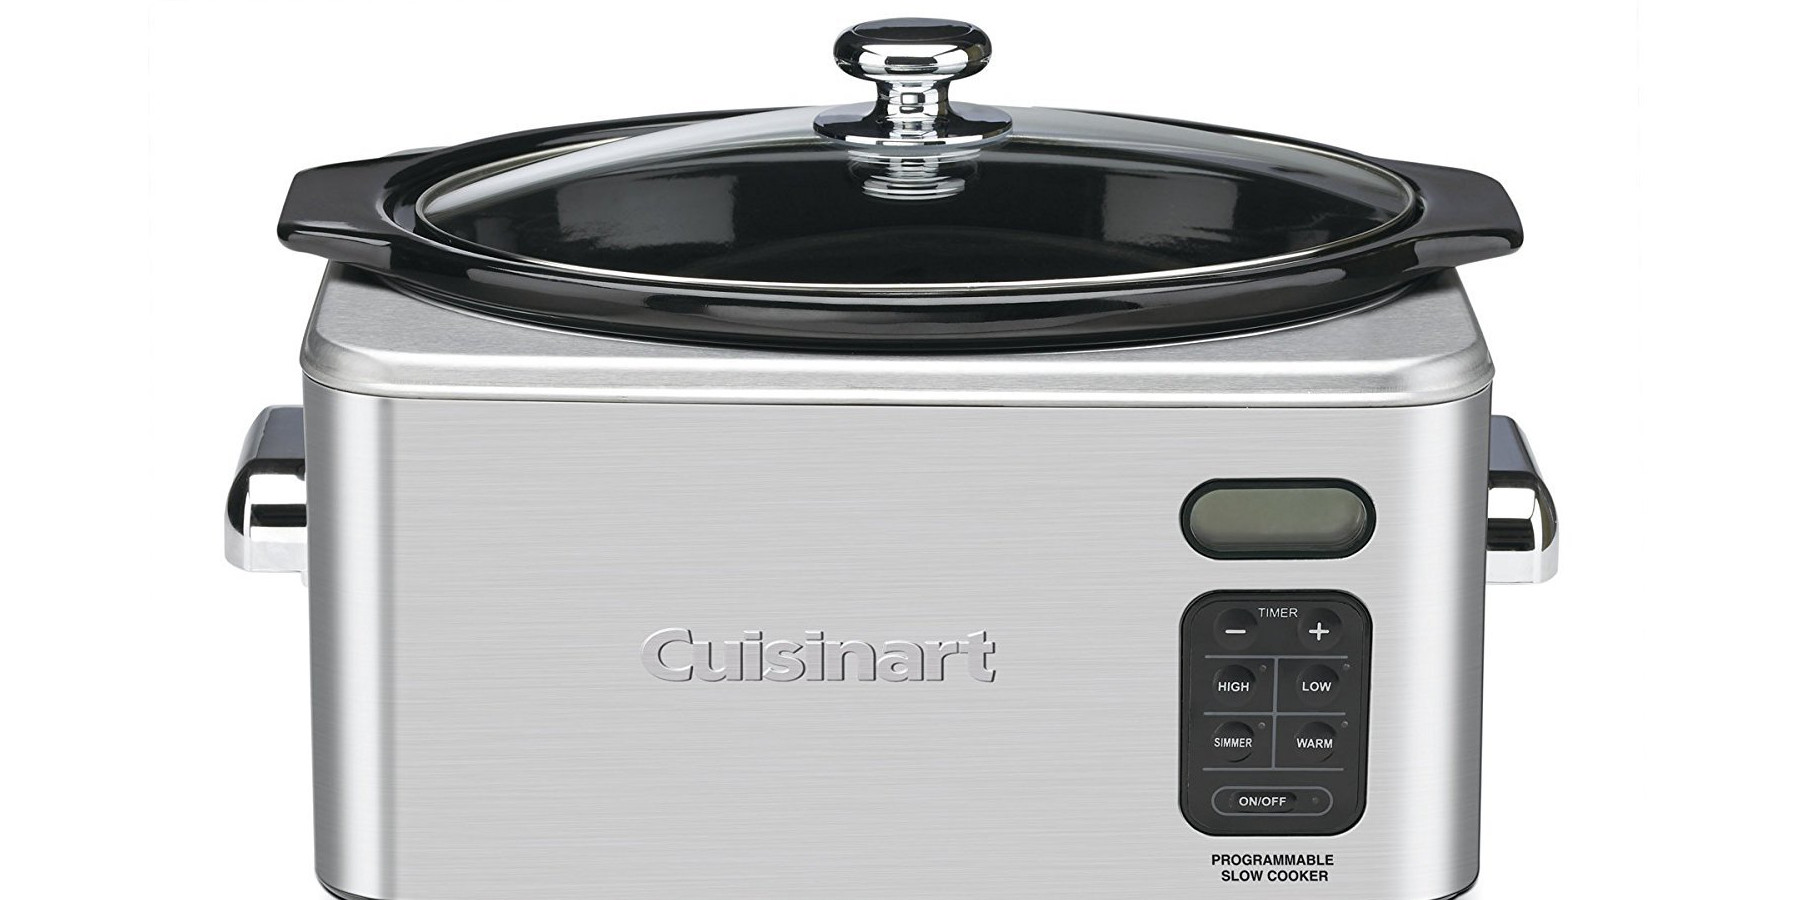 Cuisinart Stainless 6.5-quart Programmable Slow Cooker Drops 46.50 Shipped - 9to5toys